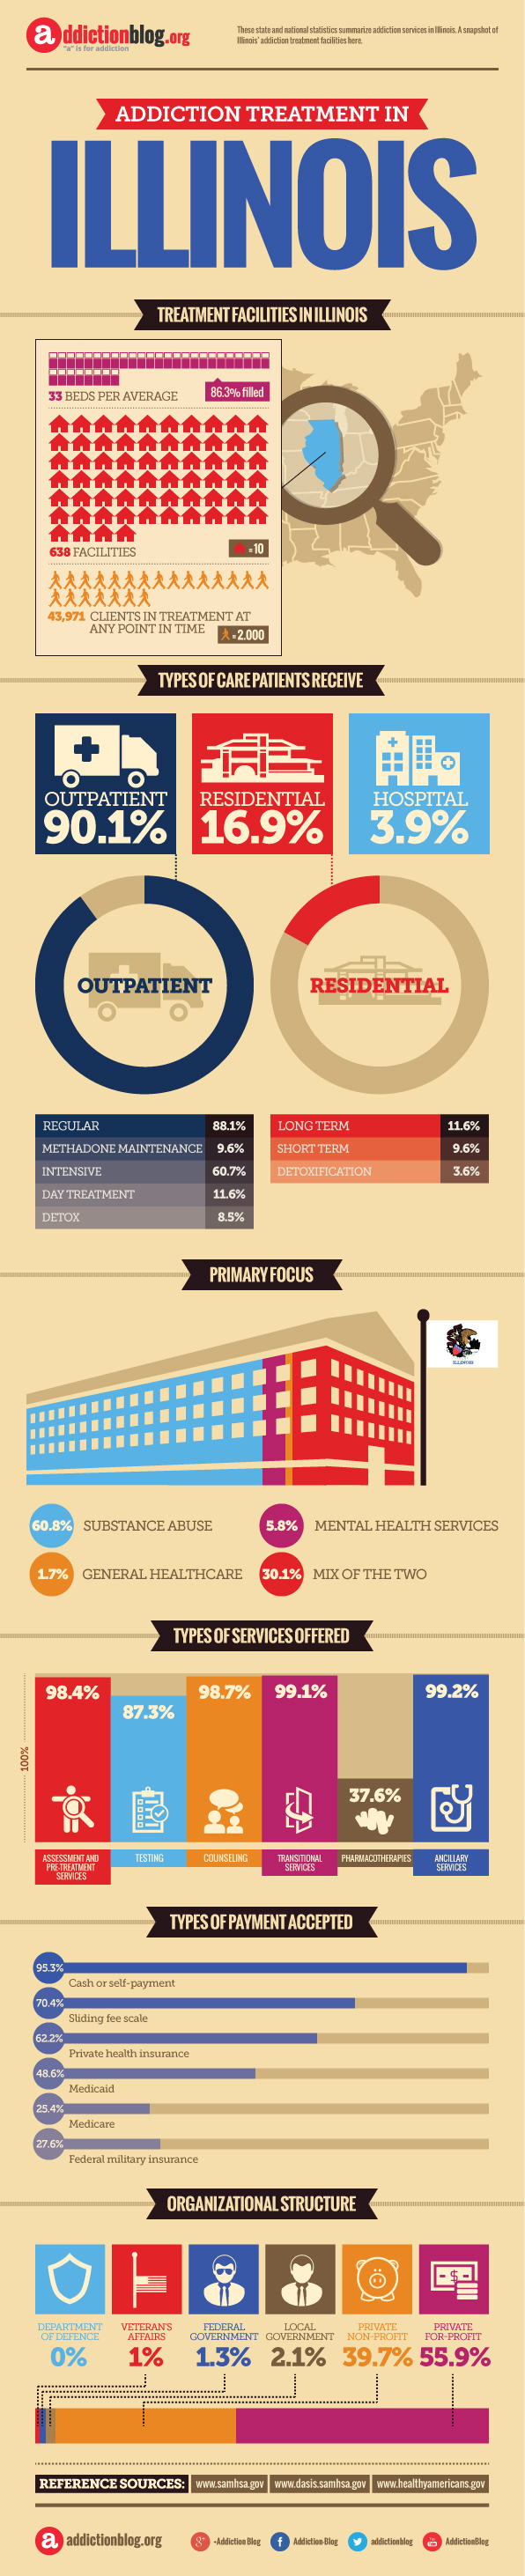 Rehab centers in Illinois (INFOGRAPHIC)